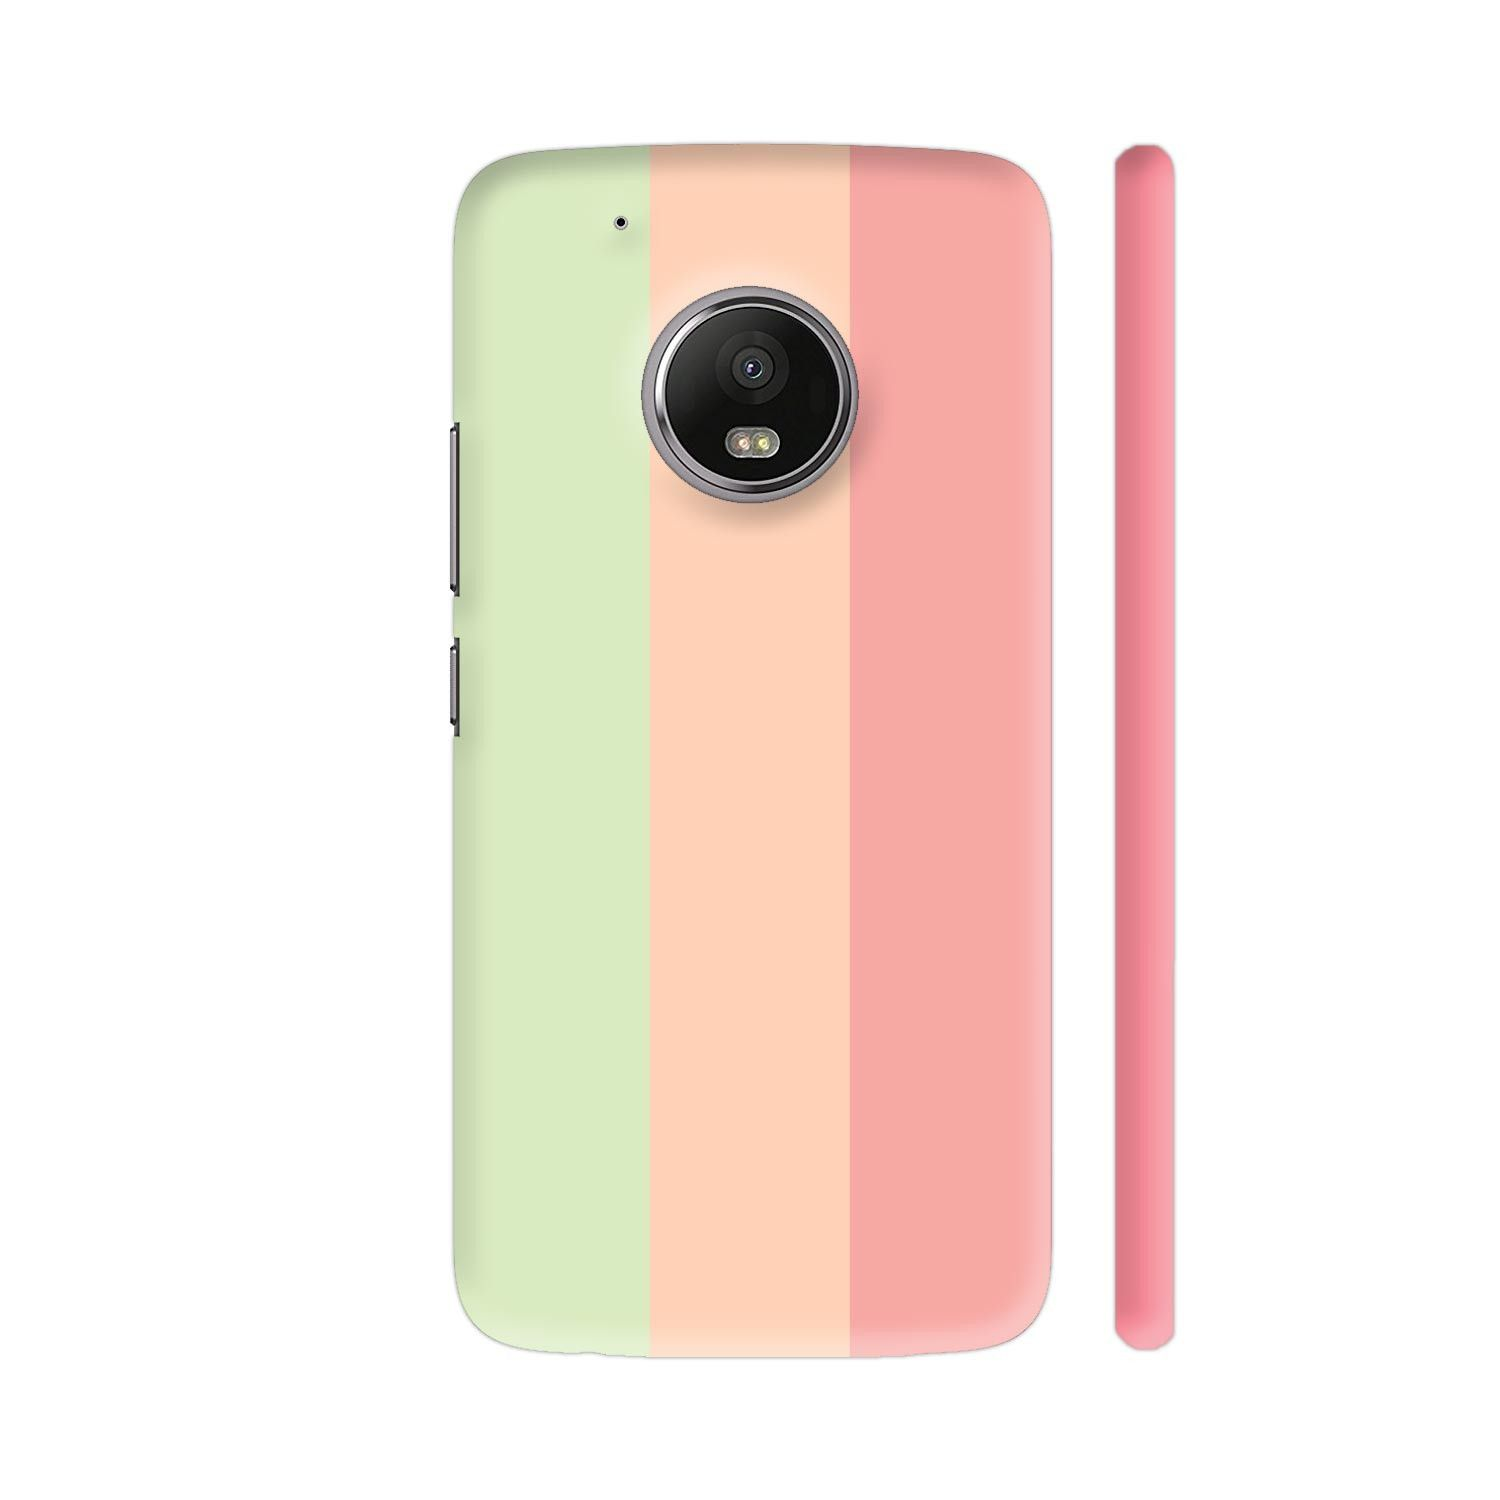 ad99a9d5858 Buy premium quality Pastel Color Stripes Moto G5 Plus Case designed by  artist Neeja Shah from India. Get lifetime warranty on colors and free  shipping ...